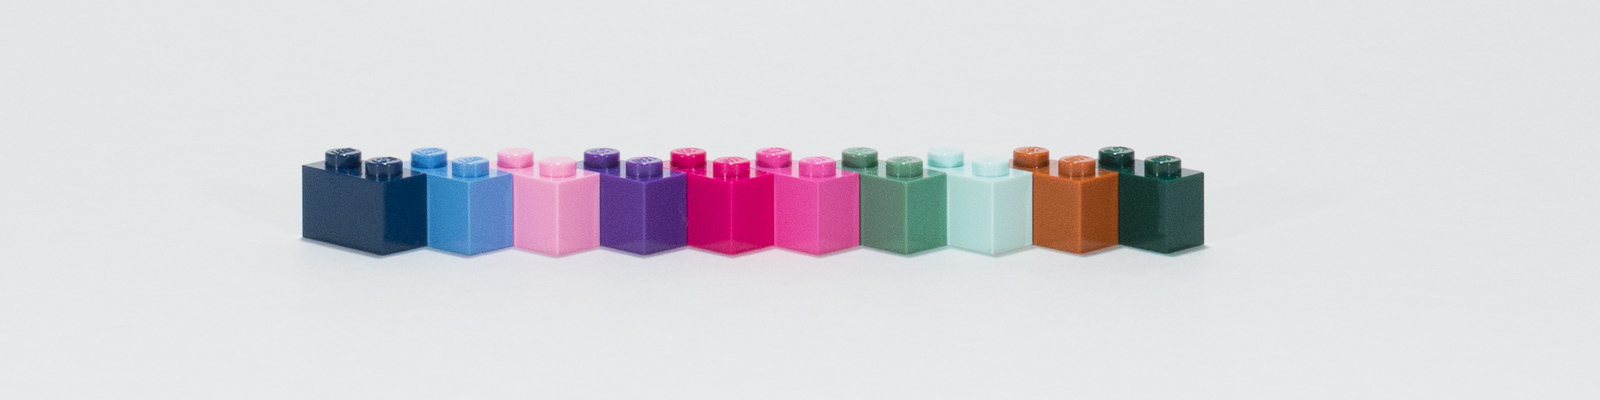 Hard-to-Find LEGO Colors (and what to do about it) – BRICK ARCHITECT